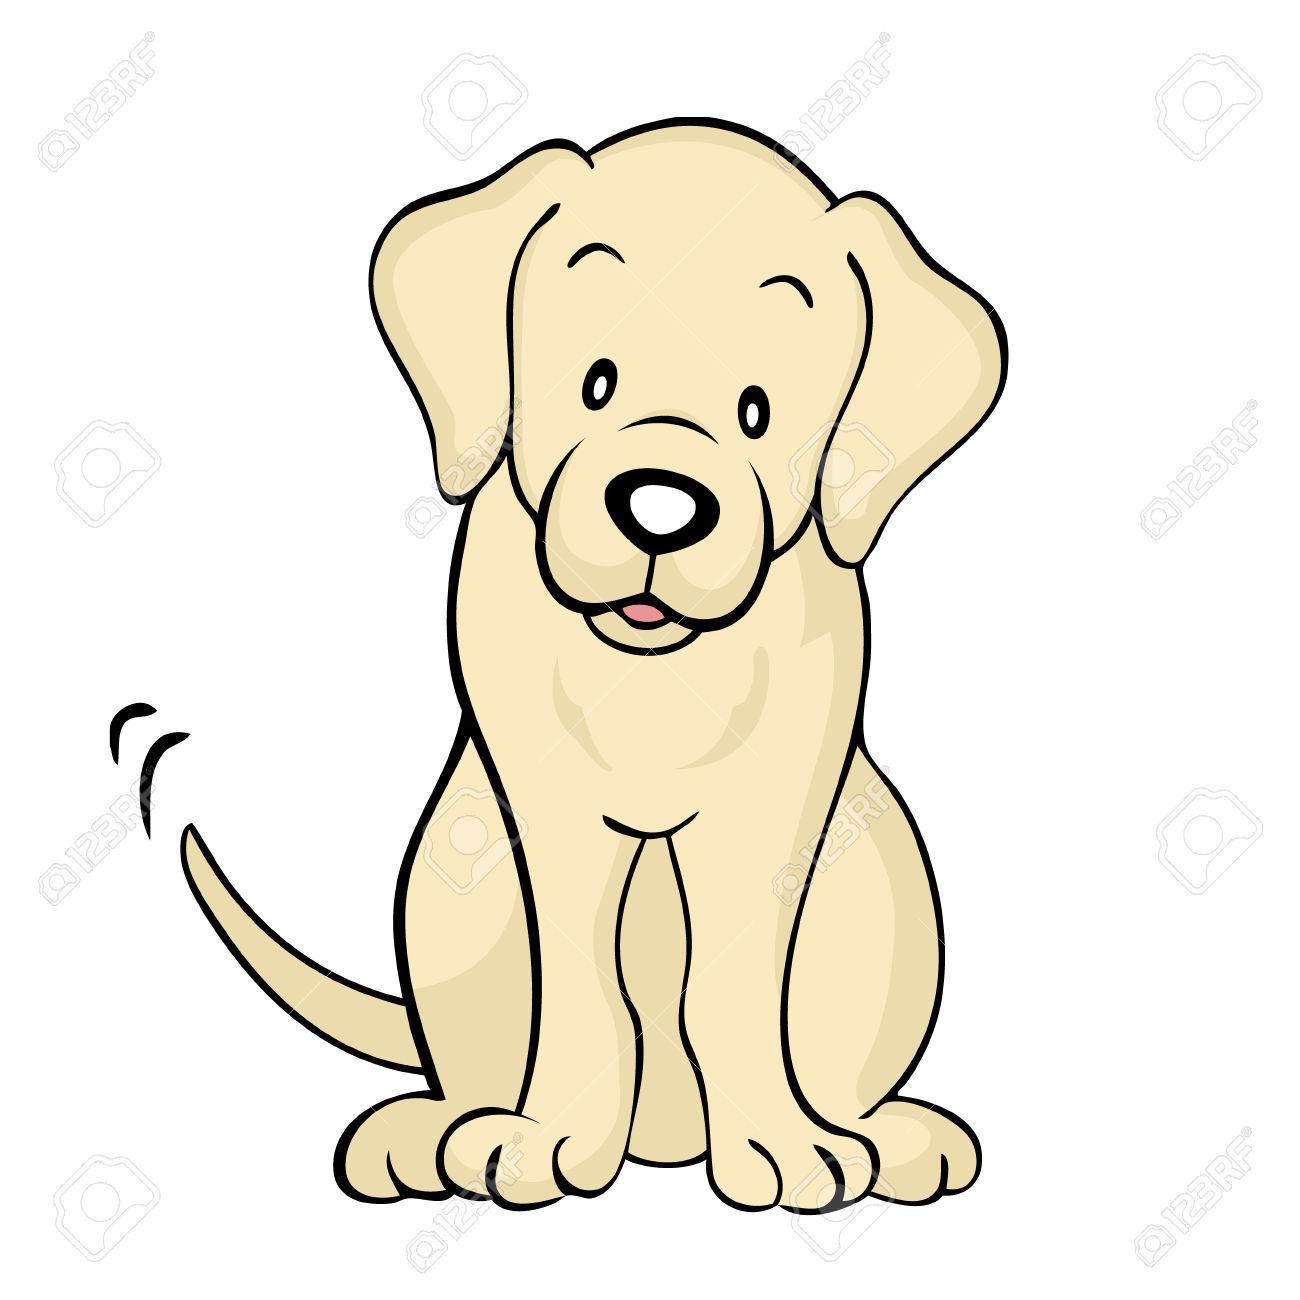 Labrador Puppy Silhouette at GetDrawings.com | Free for personal use ...